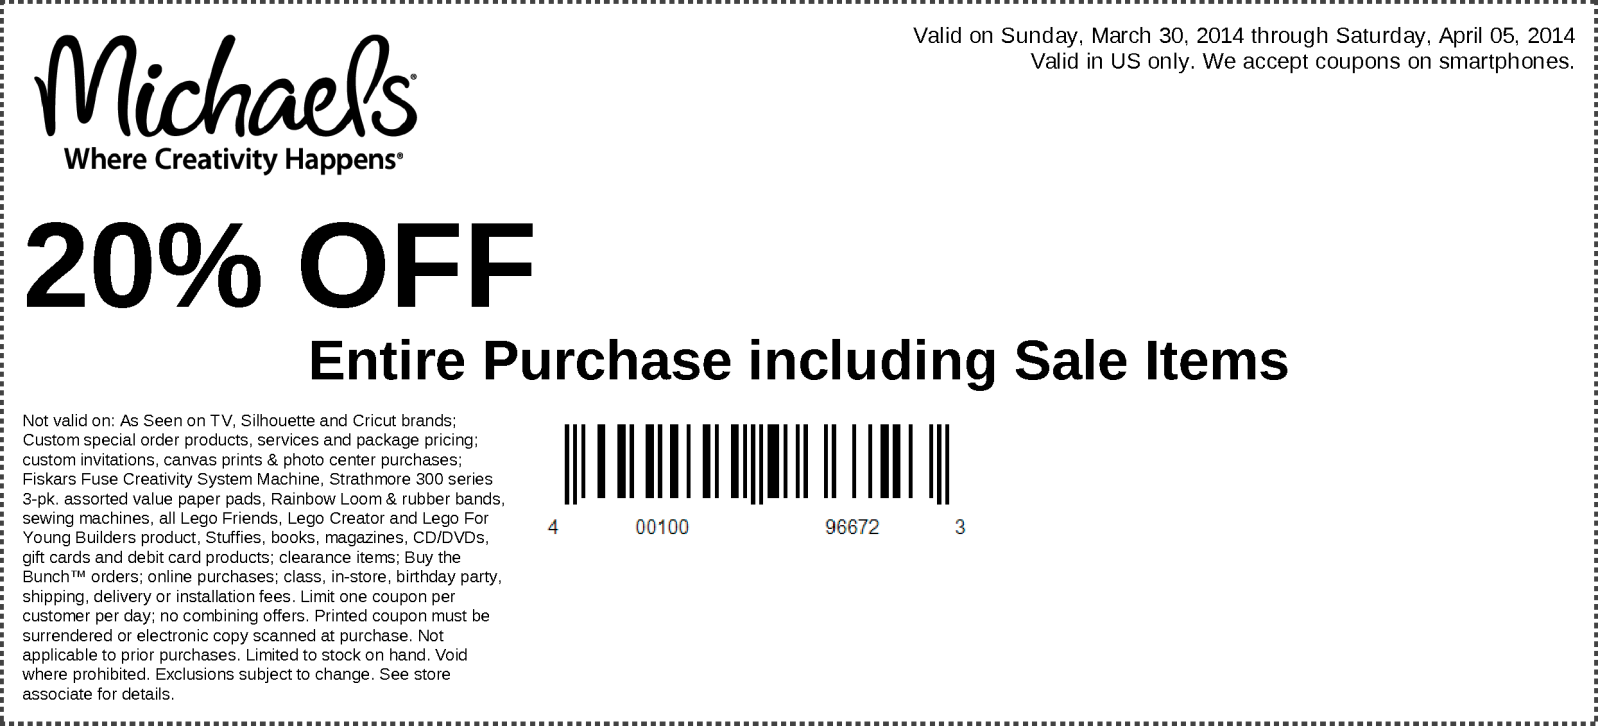 Michaels 20 Off Your Entire In Store Purchase Exp 04 05 14 Via The Coupons App Printable Coupons Free Printable Coupons Promo Coupon